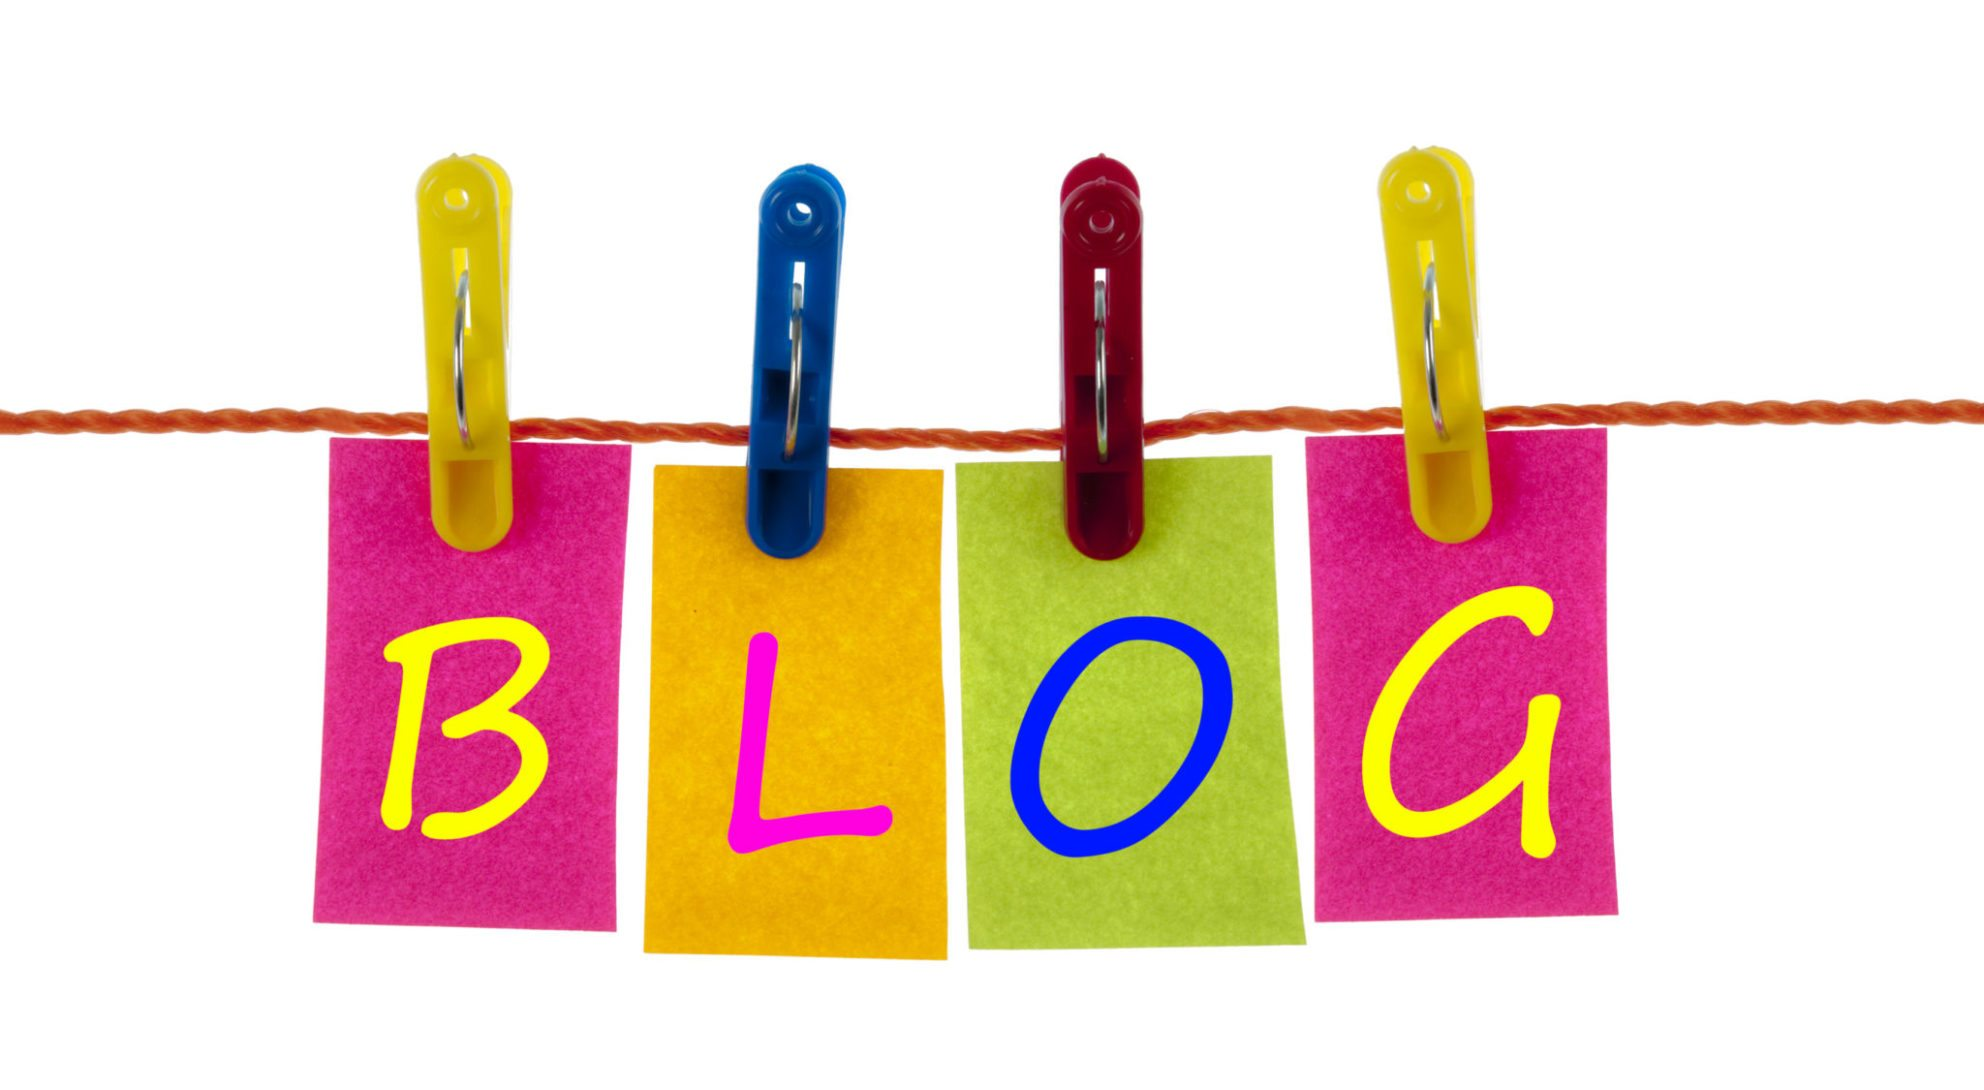 3 ways to repurpose real estate blog content to revitalize your website